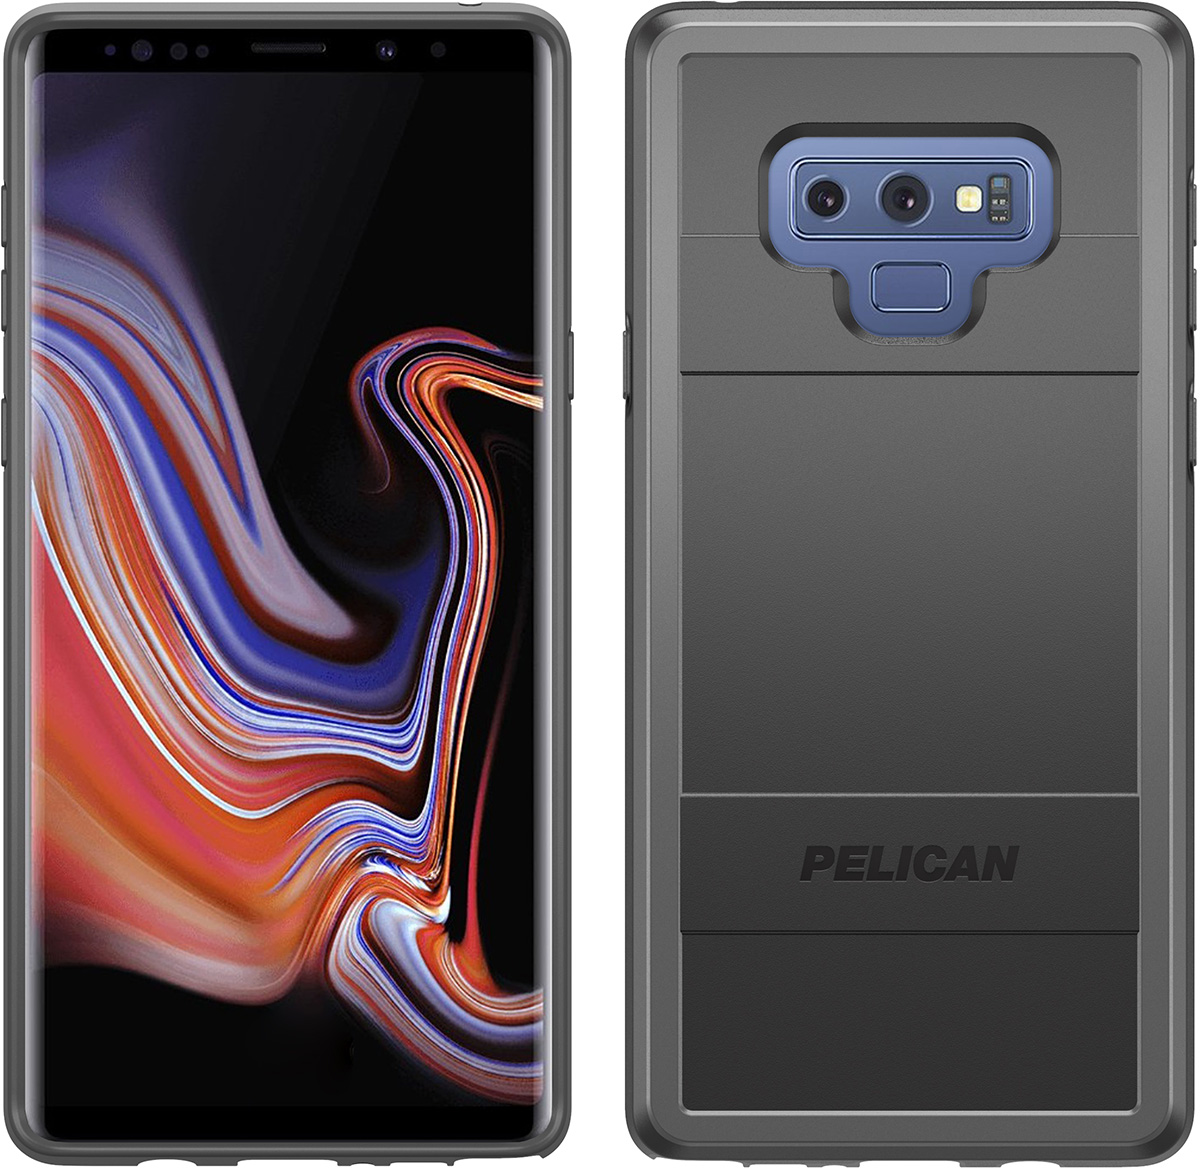 pelican c41000 samsung note9 protector phone case